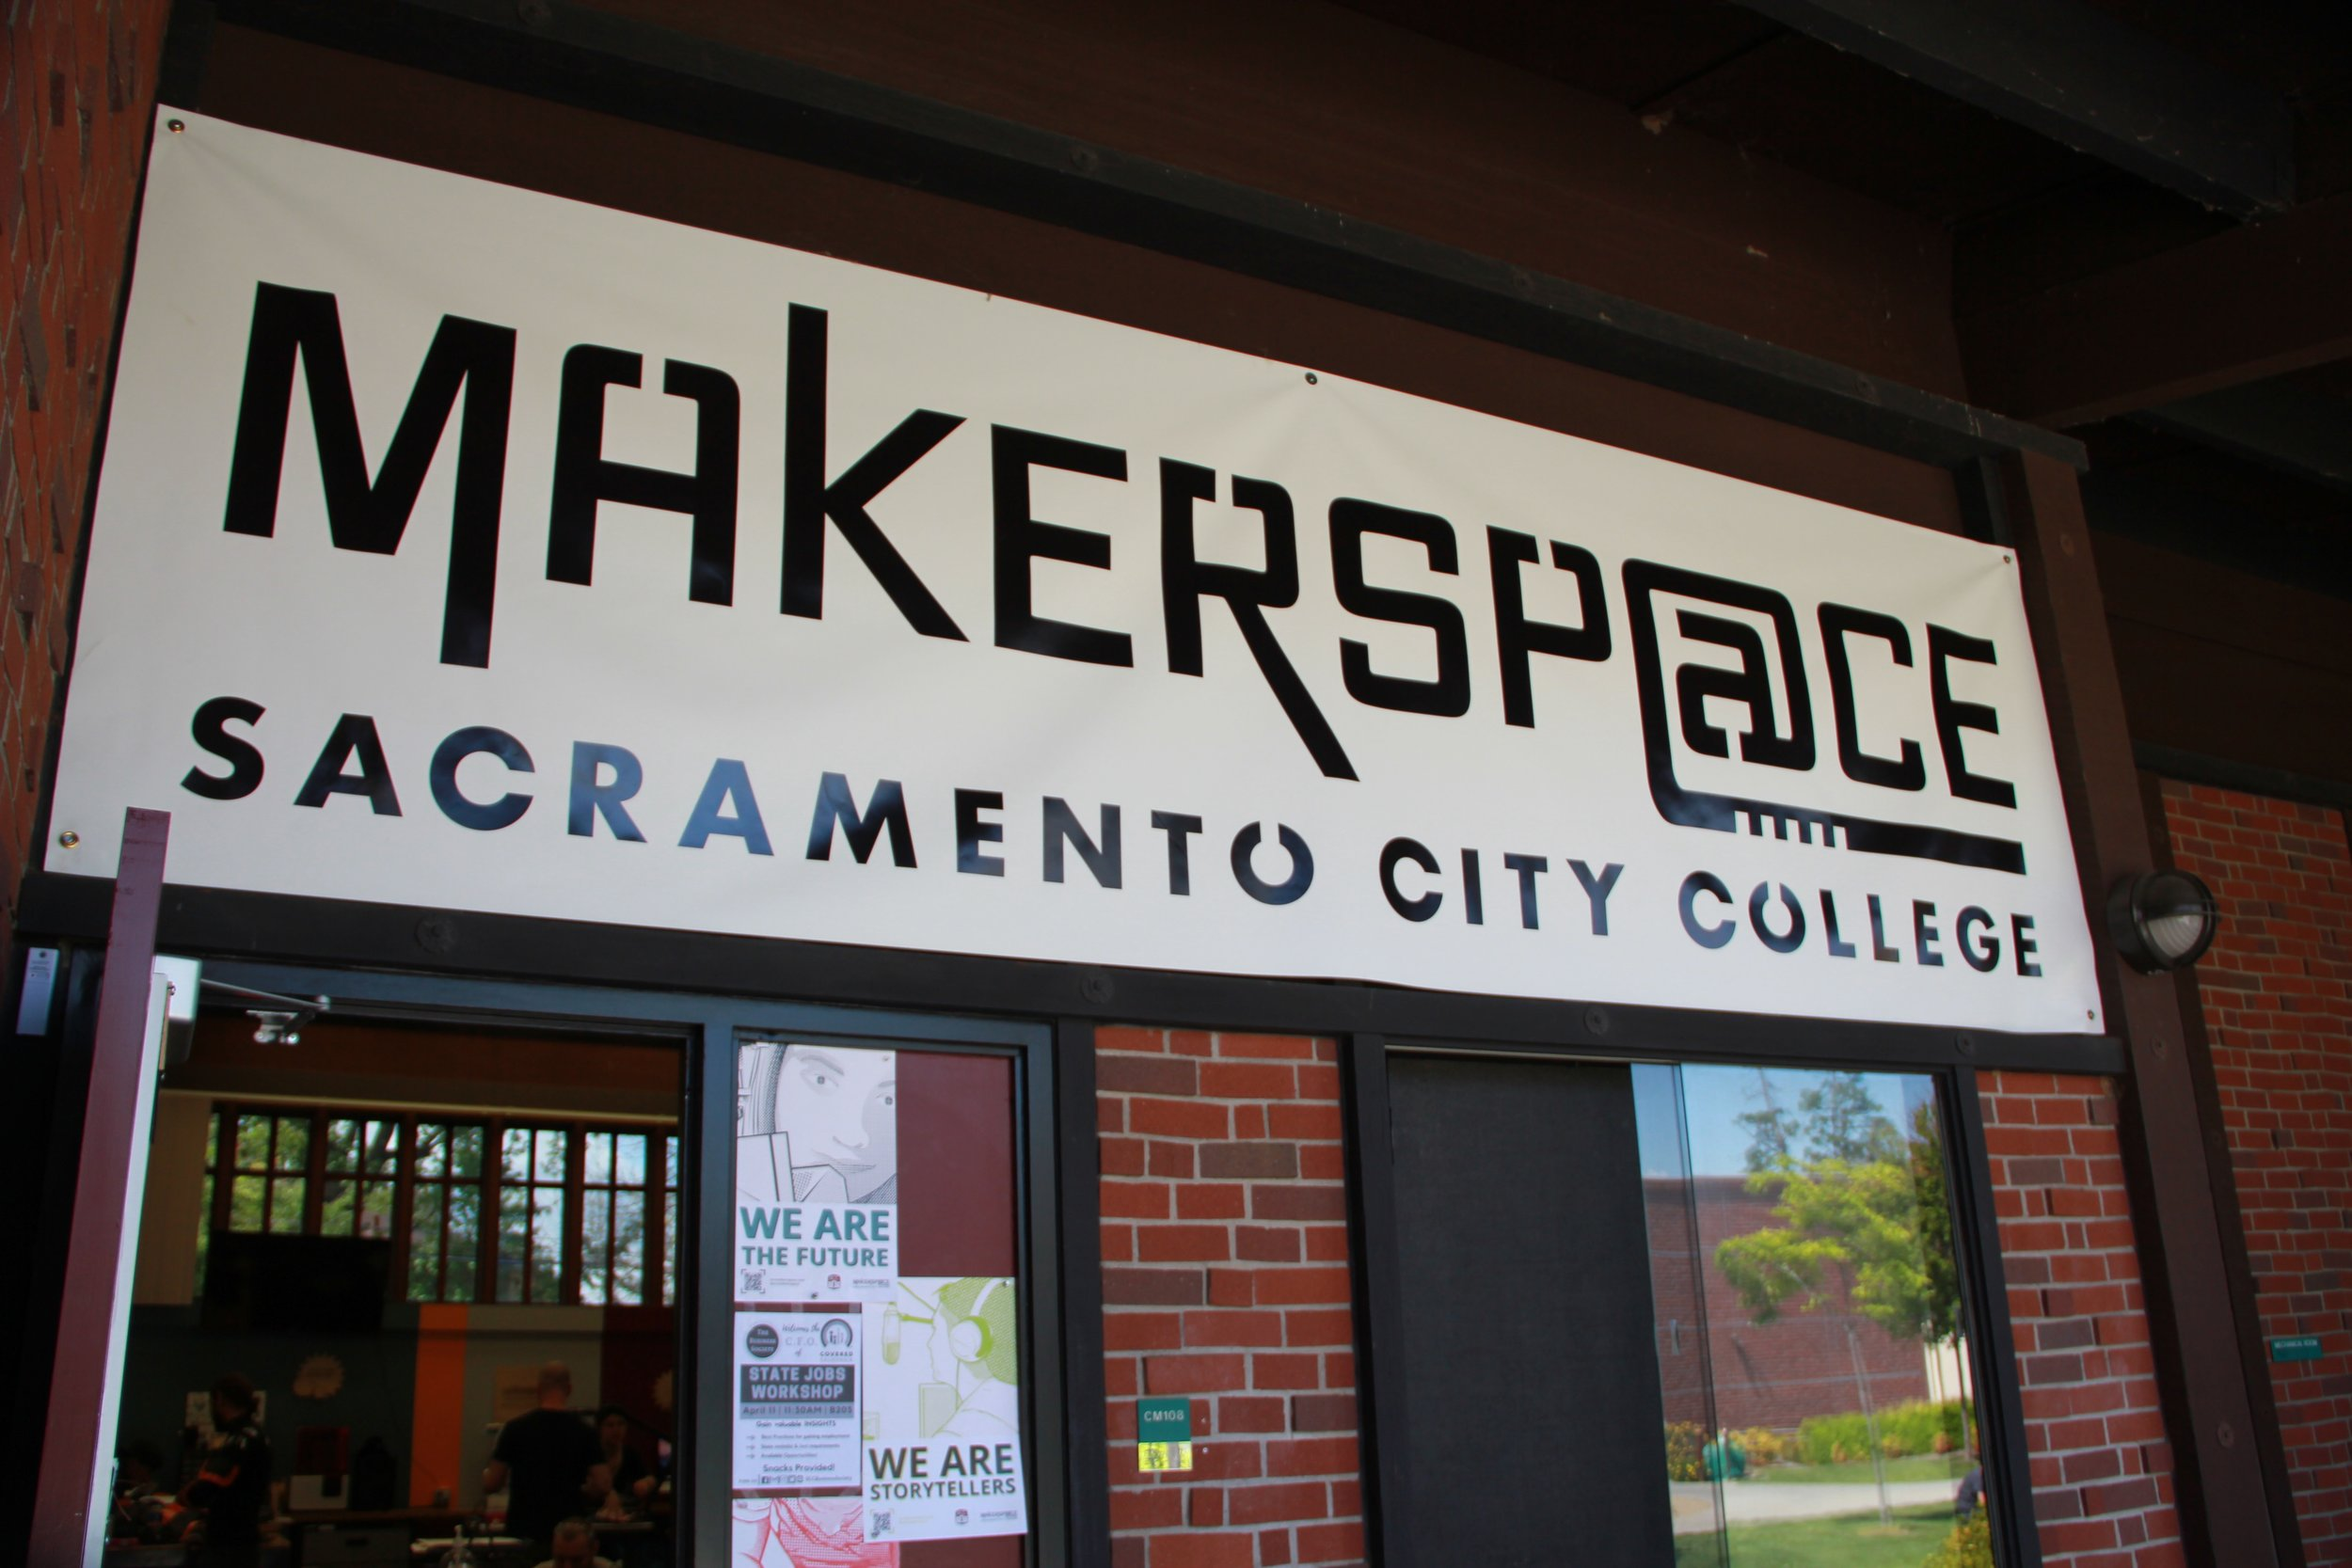 """Sac City Makerspace """"Soft Opens."""" - Sacramento City College / Posted Feb 10, 2018By Michelle Zamora"""